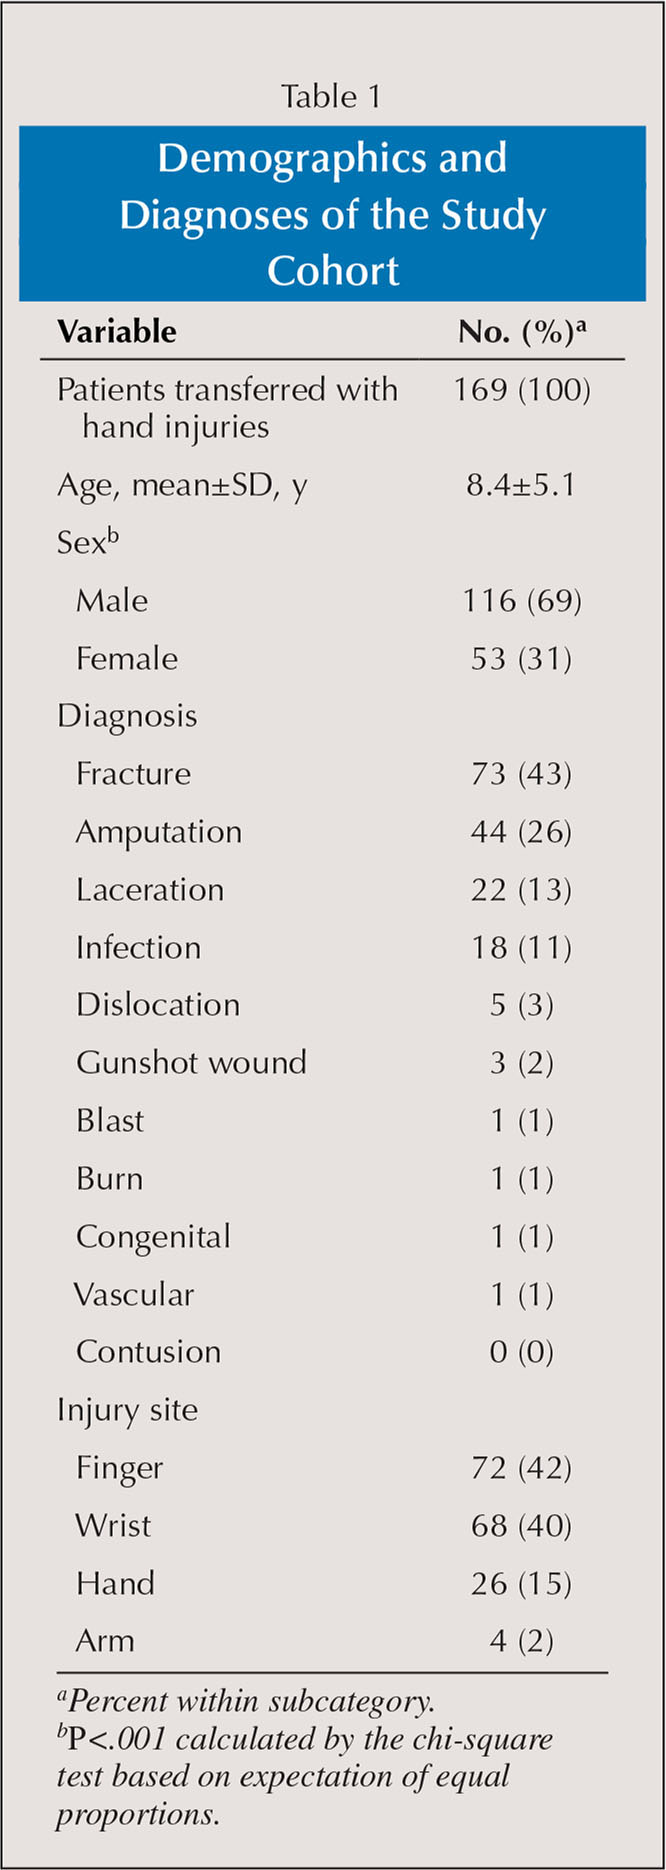 Demographics and Diagnoses of the Study Cohort